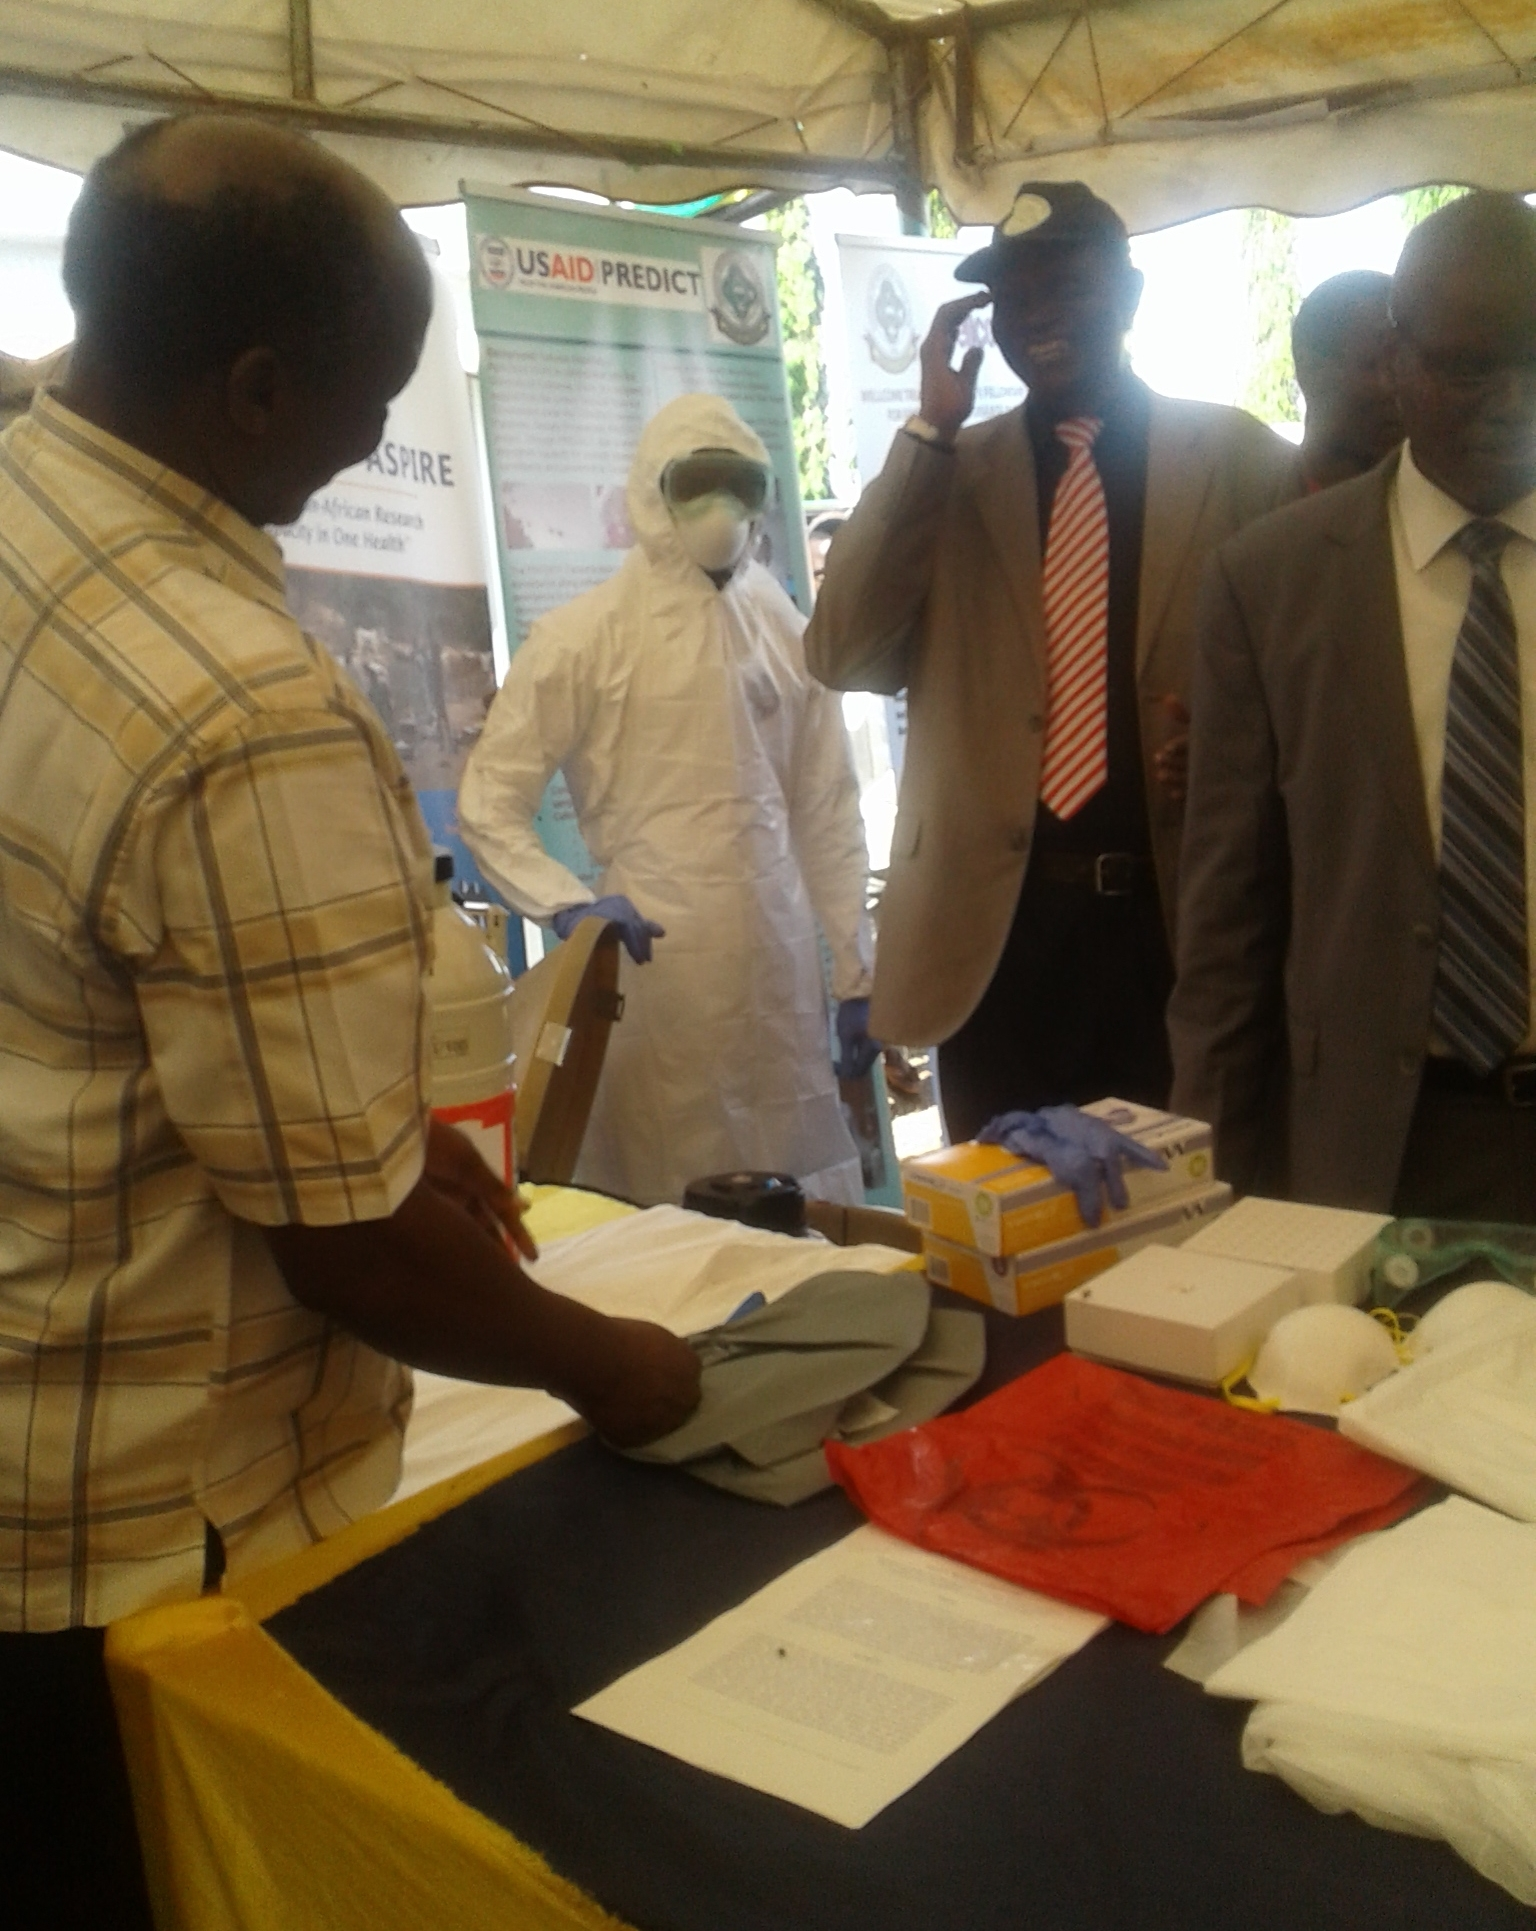 Prof. Kazwala on the lefT, Vice chancellor of Sokoine University of Agriculture on the right and Walter Simon in tyvek suit.